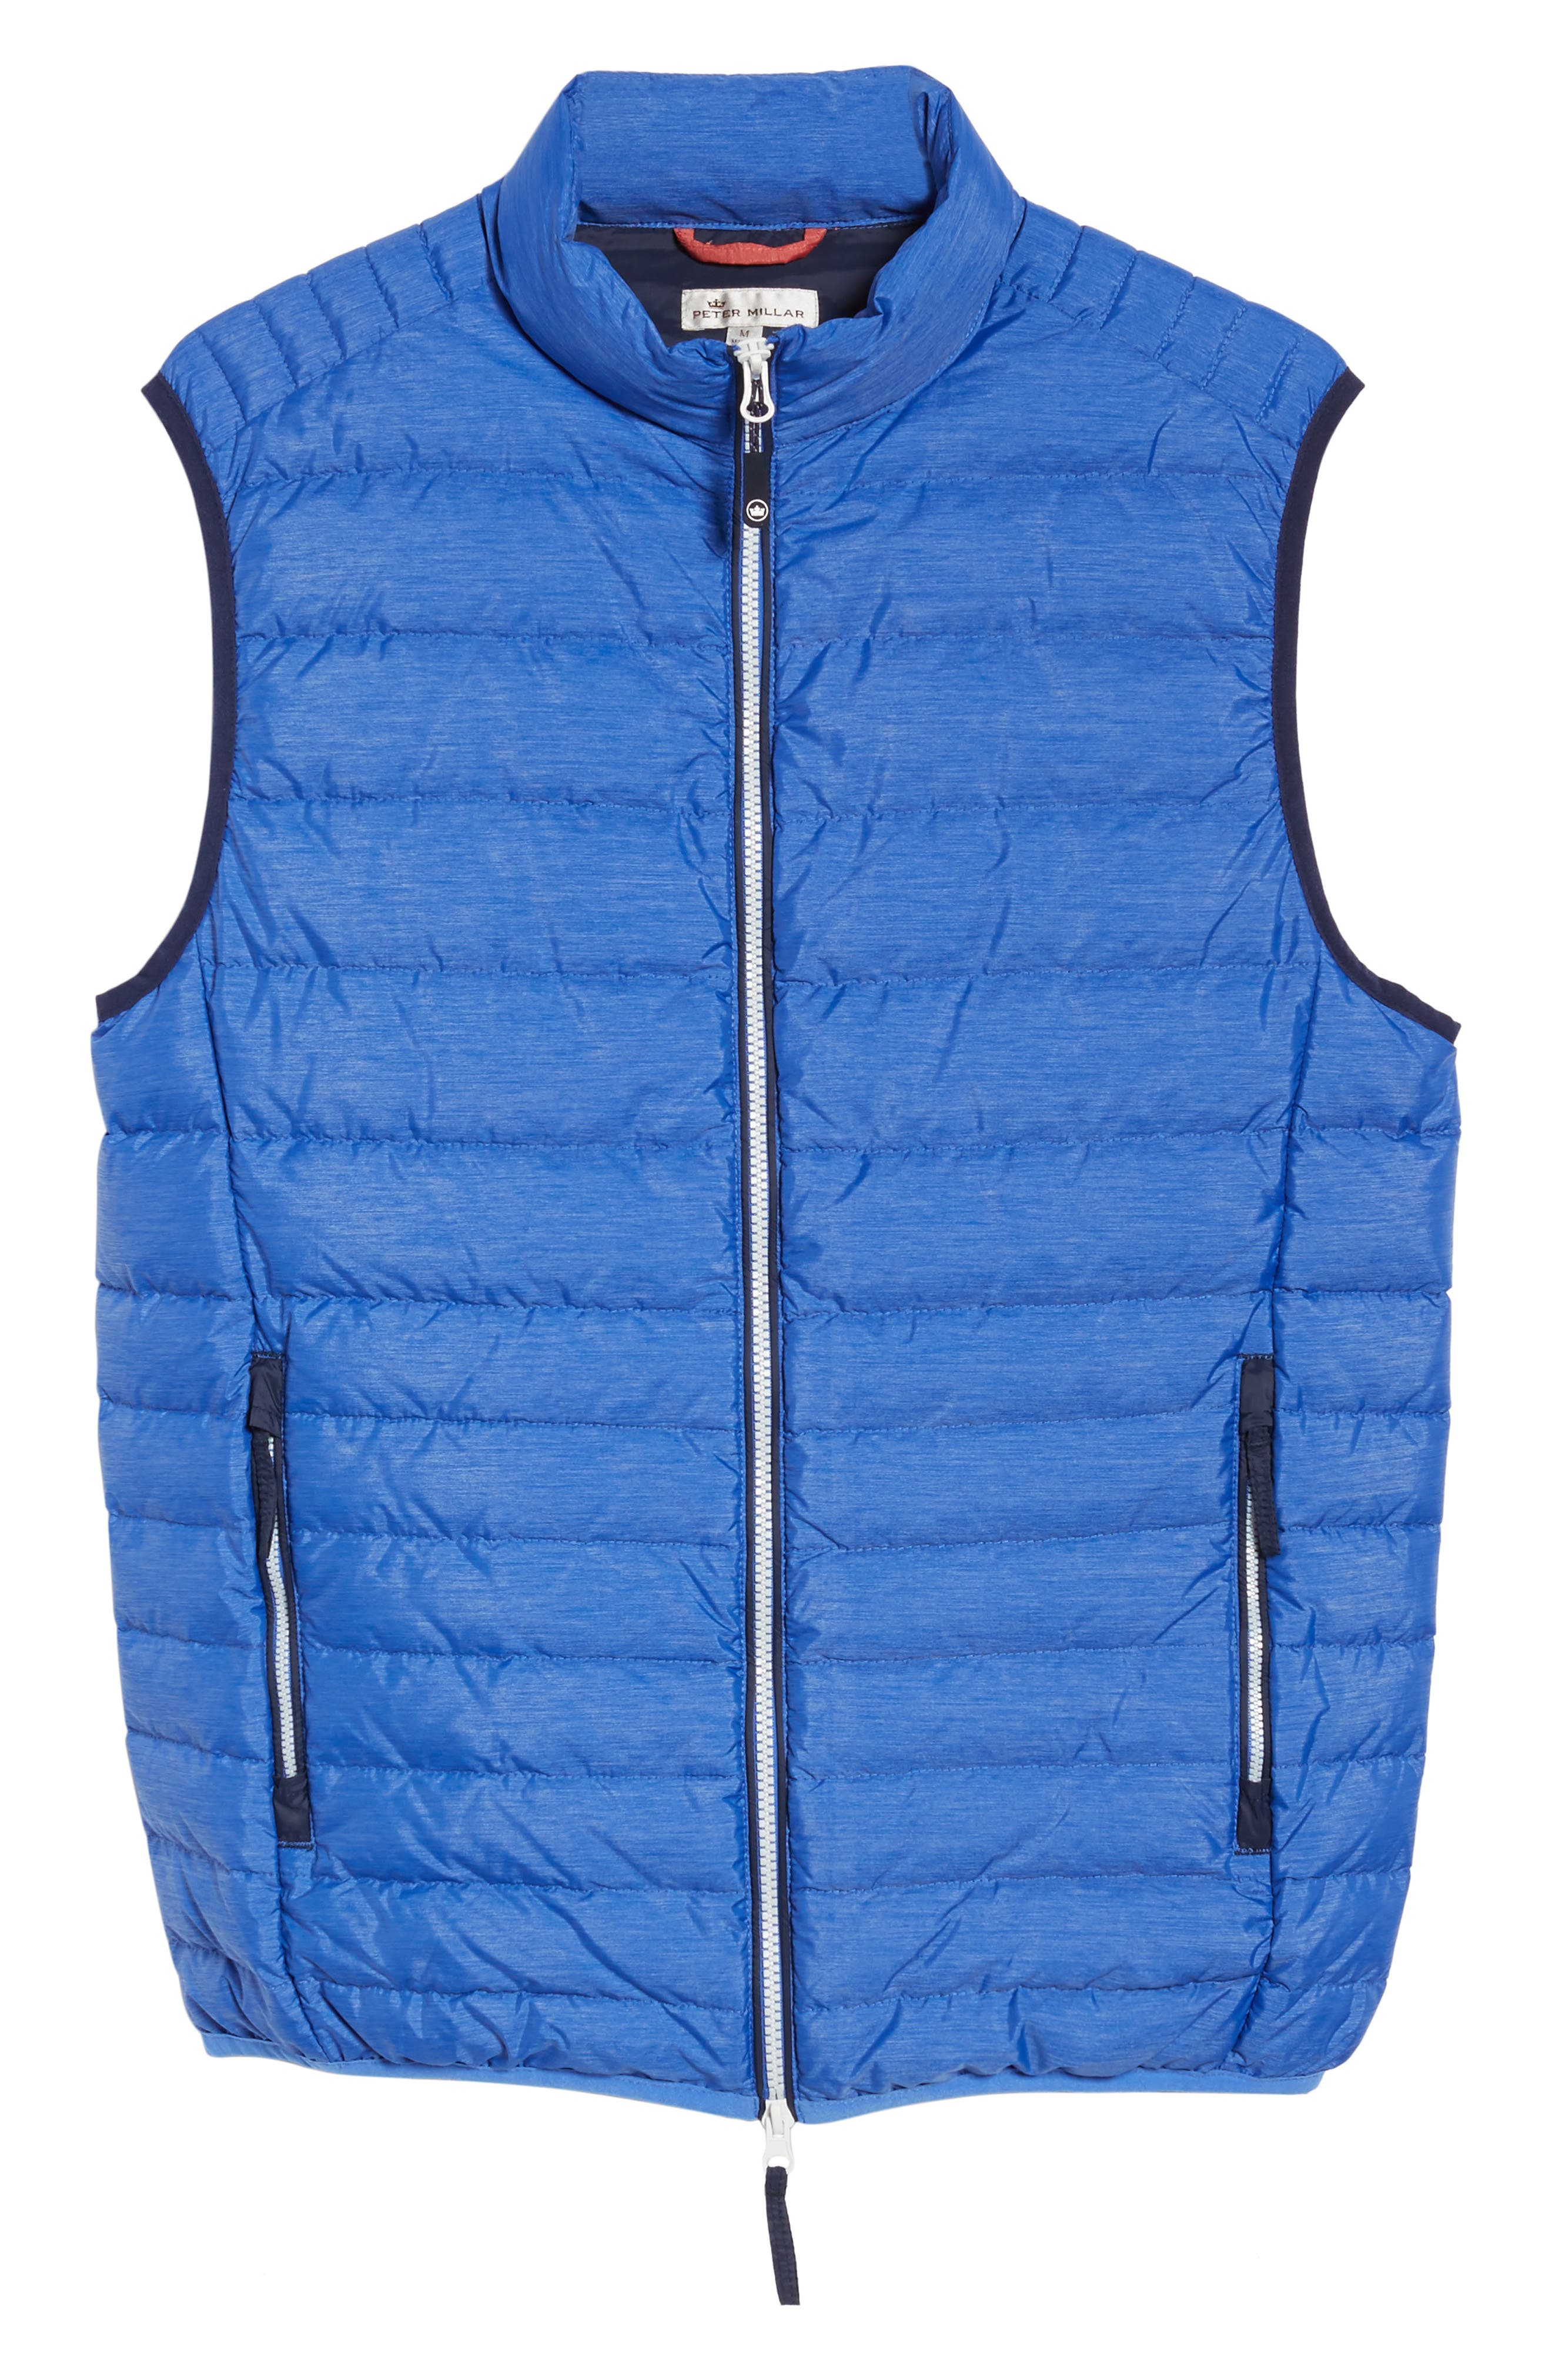 Crown Elite Light Down Vest,                             Alternate thumbnail 6, color,                             Barrier Blue